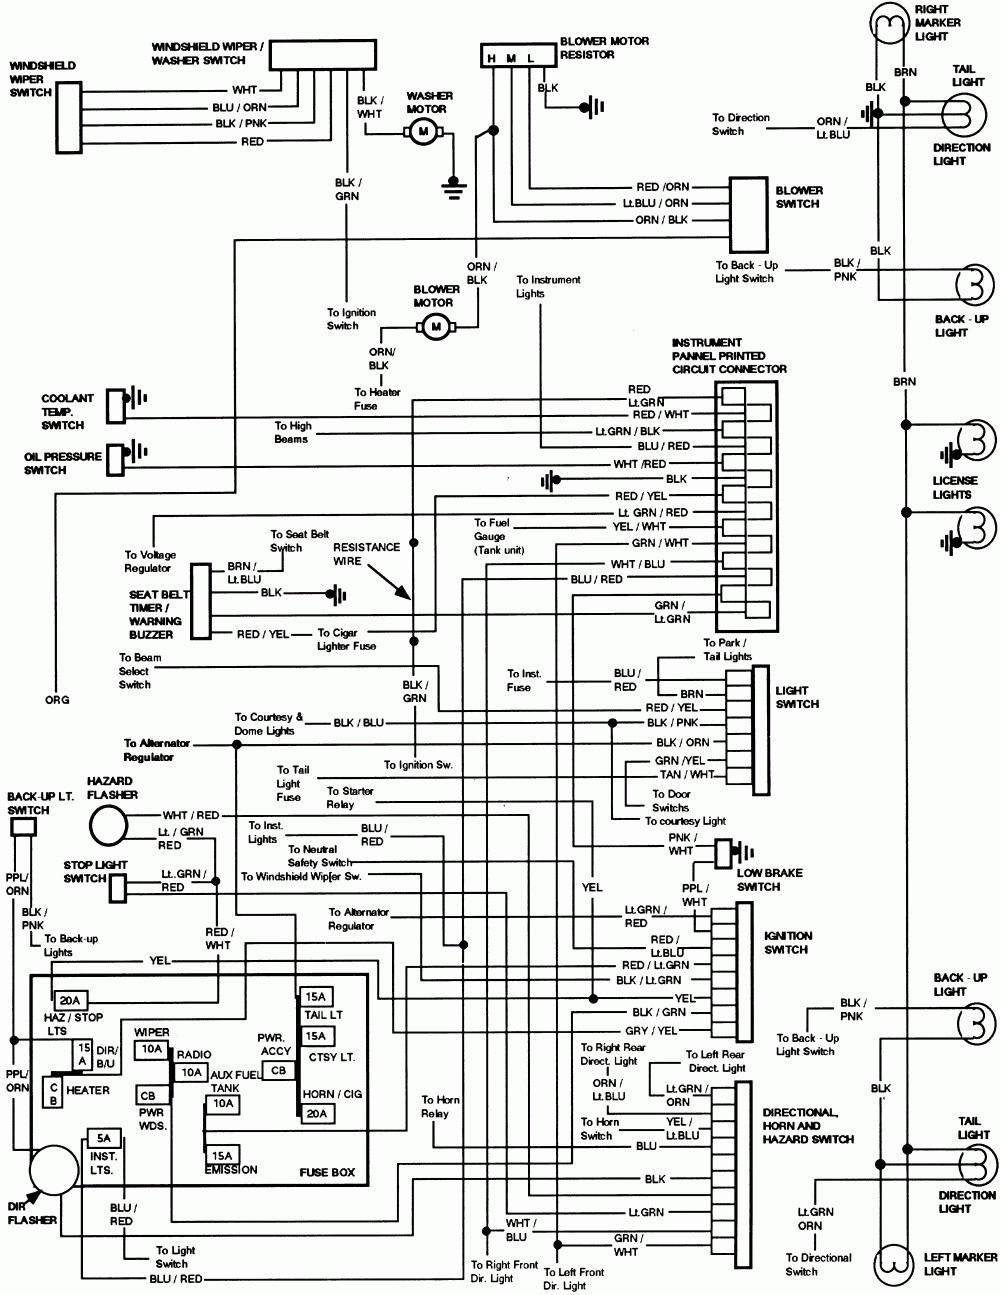 hight resolution of 1988 ford econoline econoline fuse diagram wiring diagram used1988 ford e150 wiring diagram wiring diagram for